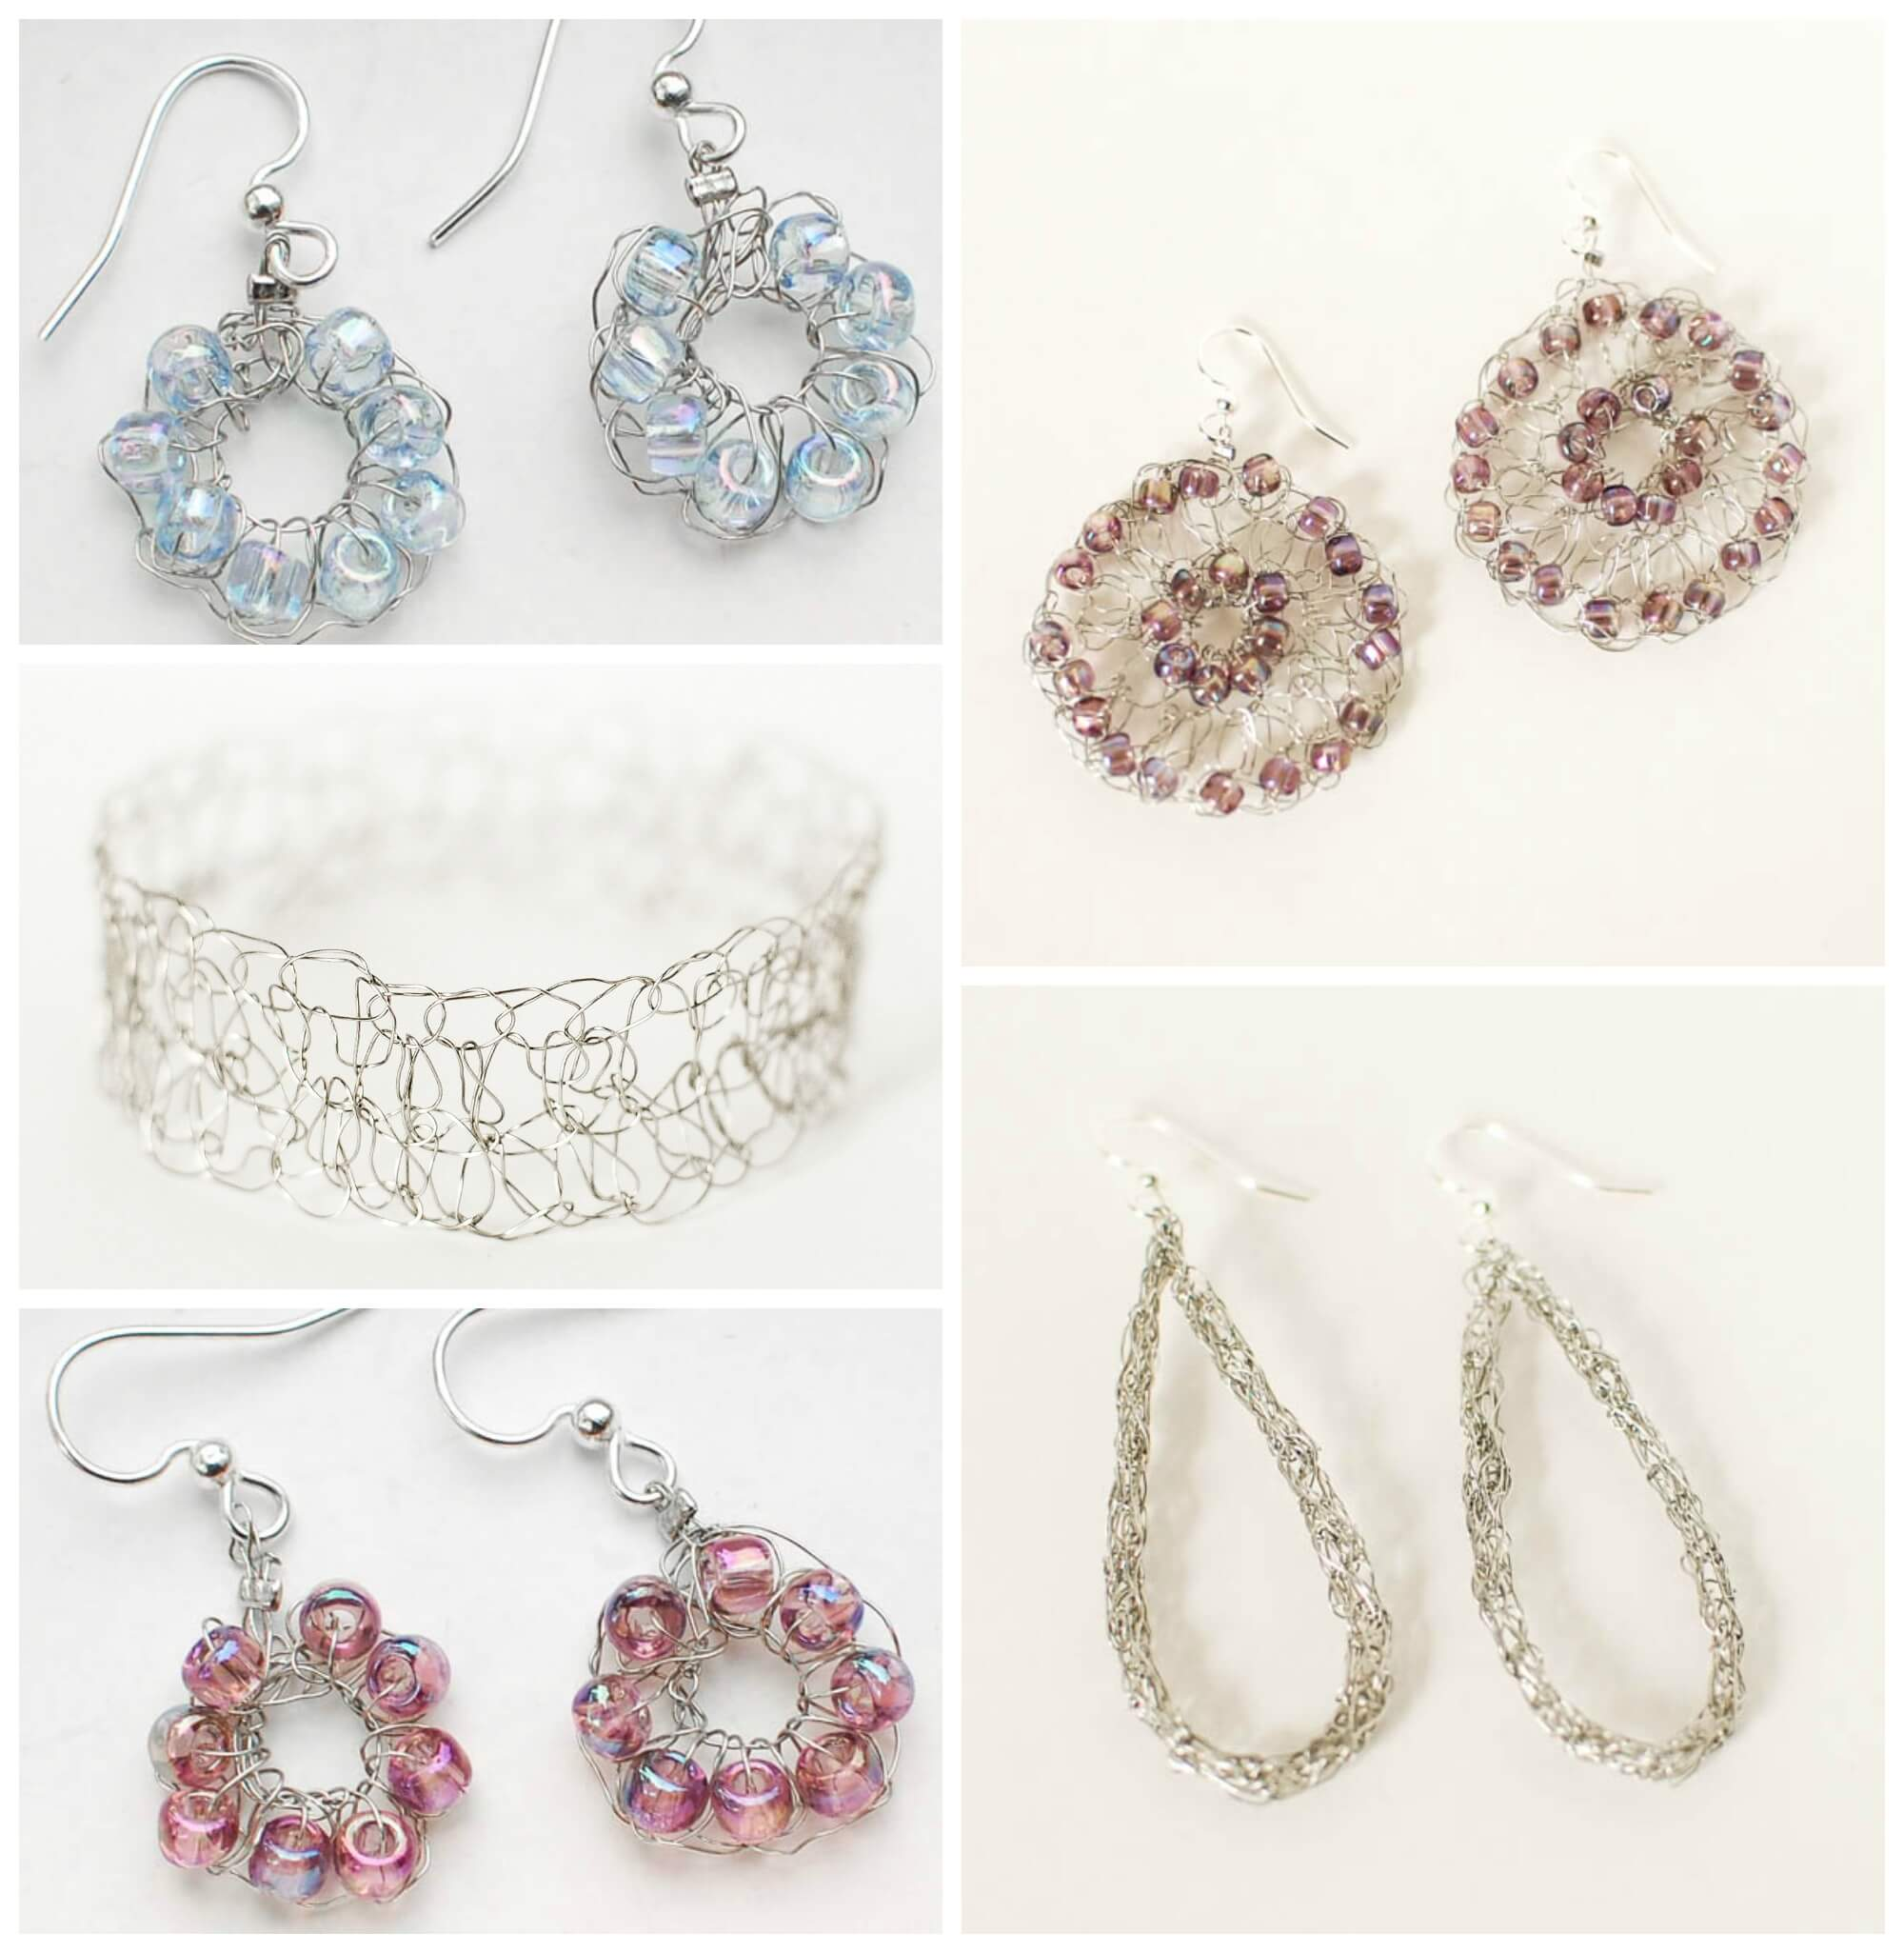 Crocheted Wire Jewelry Inspiration - Happy Hour Projects